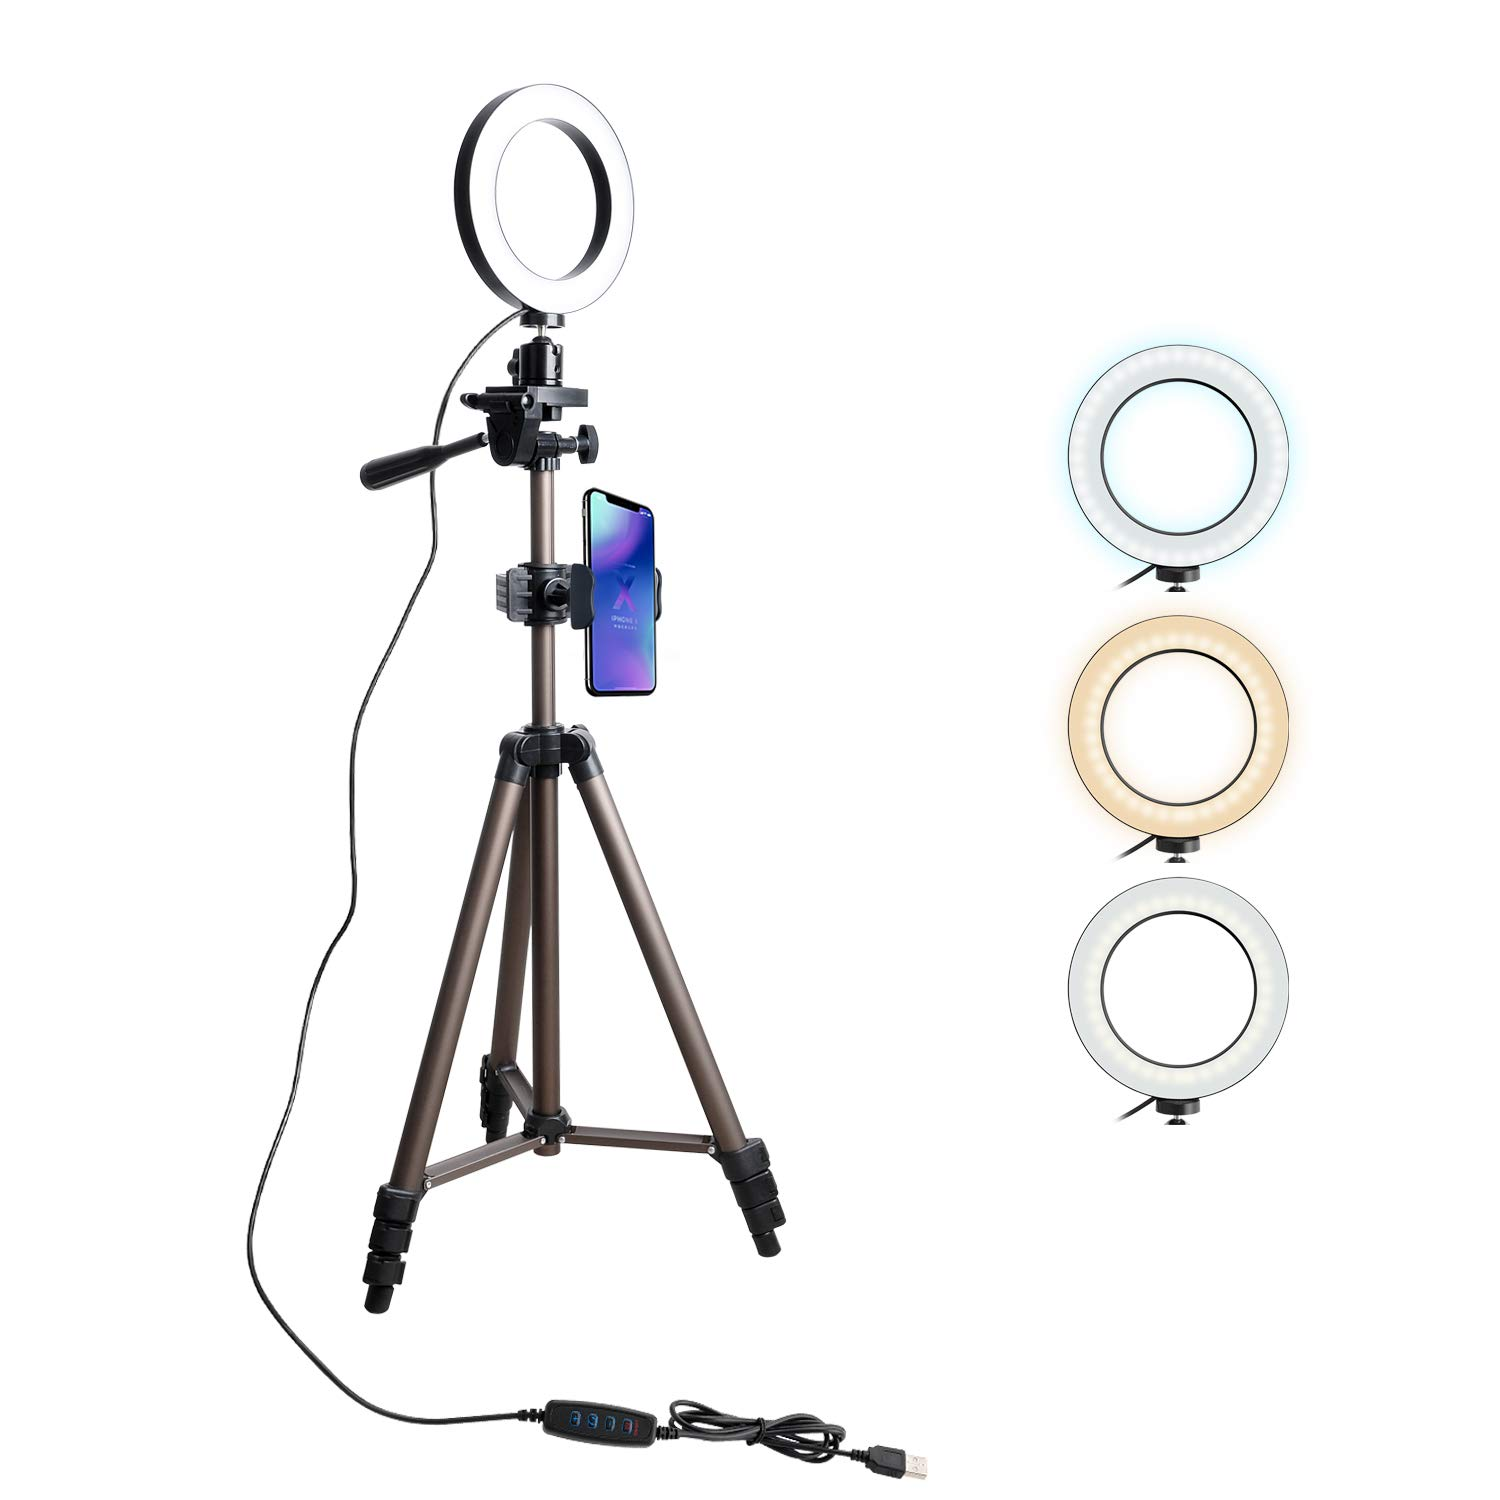 Tryone Ring Light Stand - Phone Tripod Stand, Live Stream Stand with 5.7'' LED Ring Light for YouTube Video or Makeup, 3 Light Modes & 10 Brightness Levels by Tryone